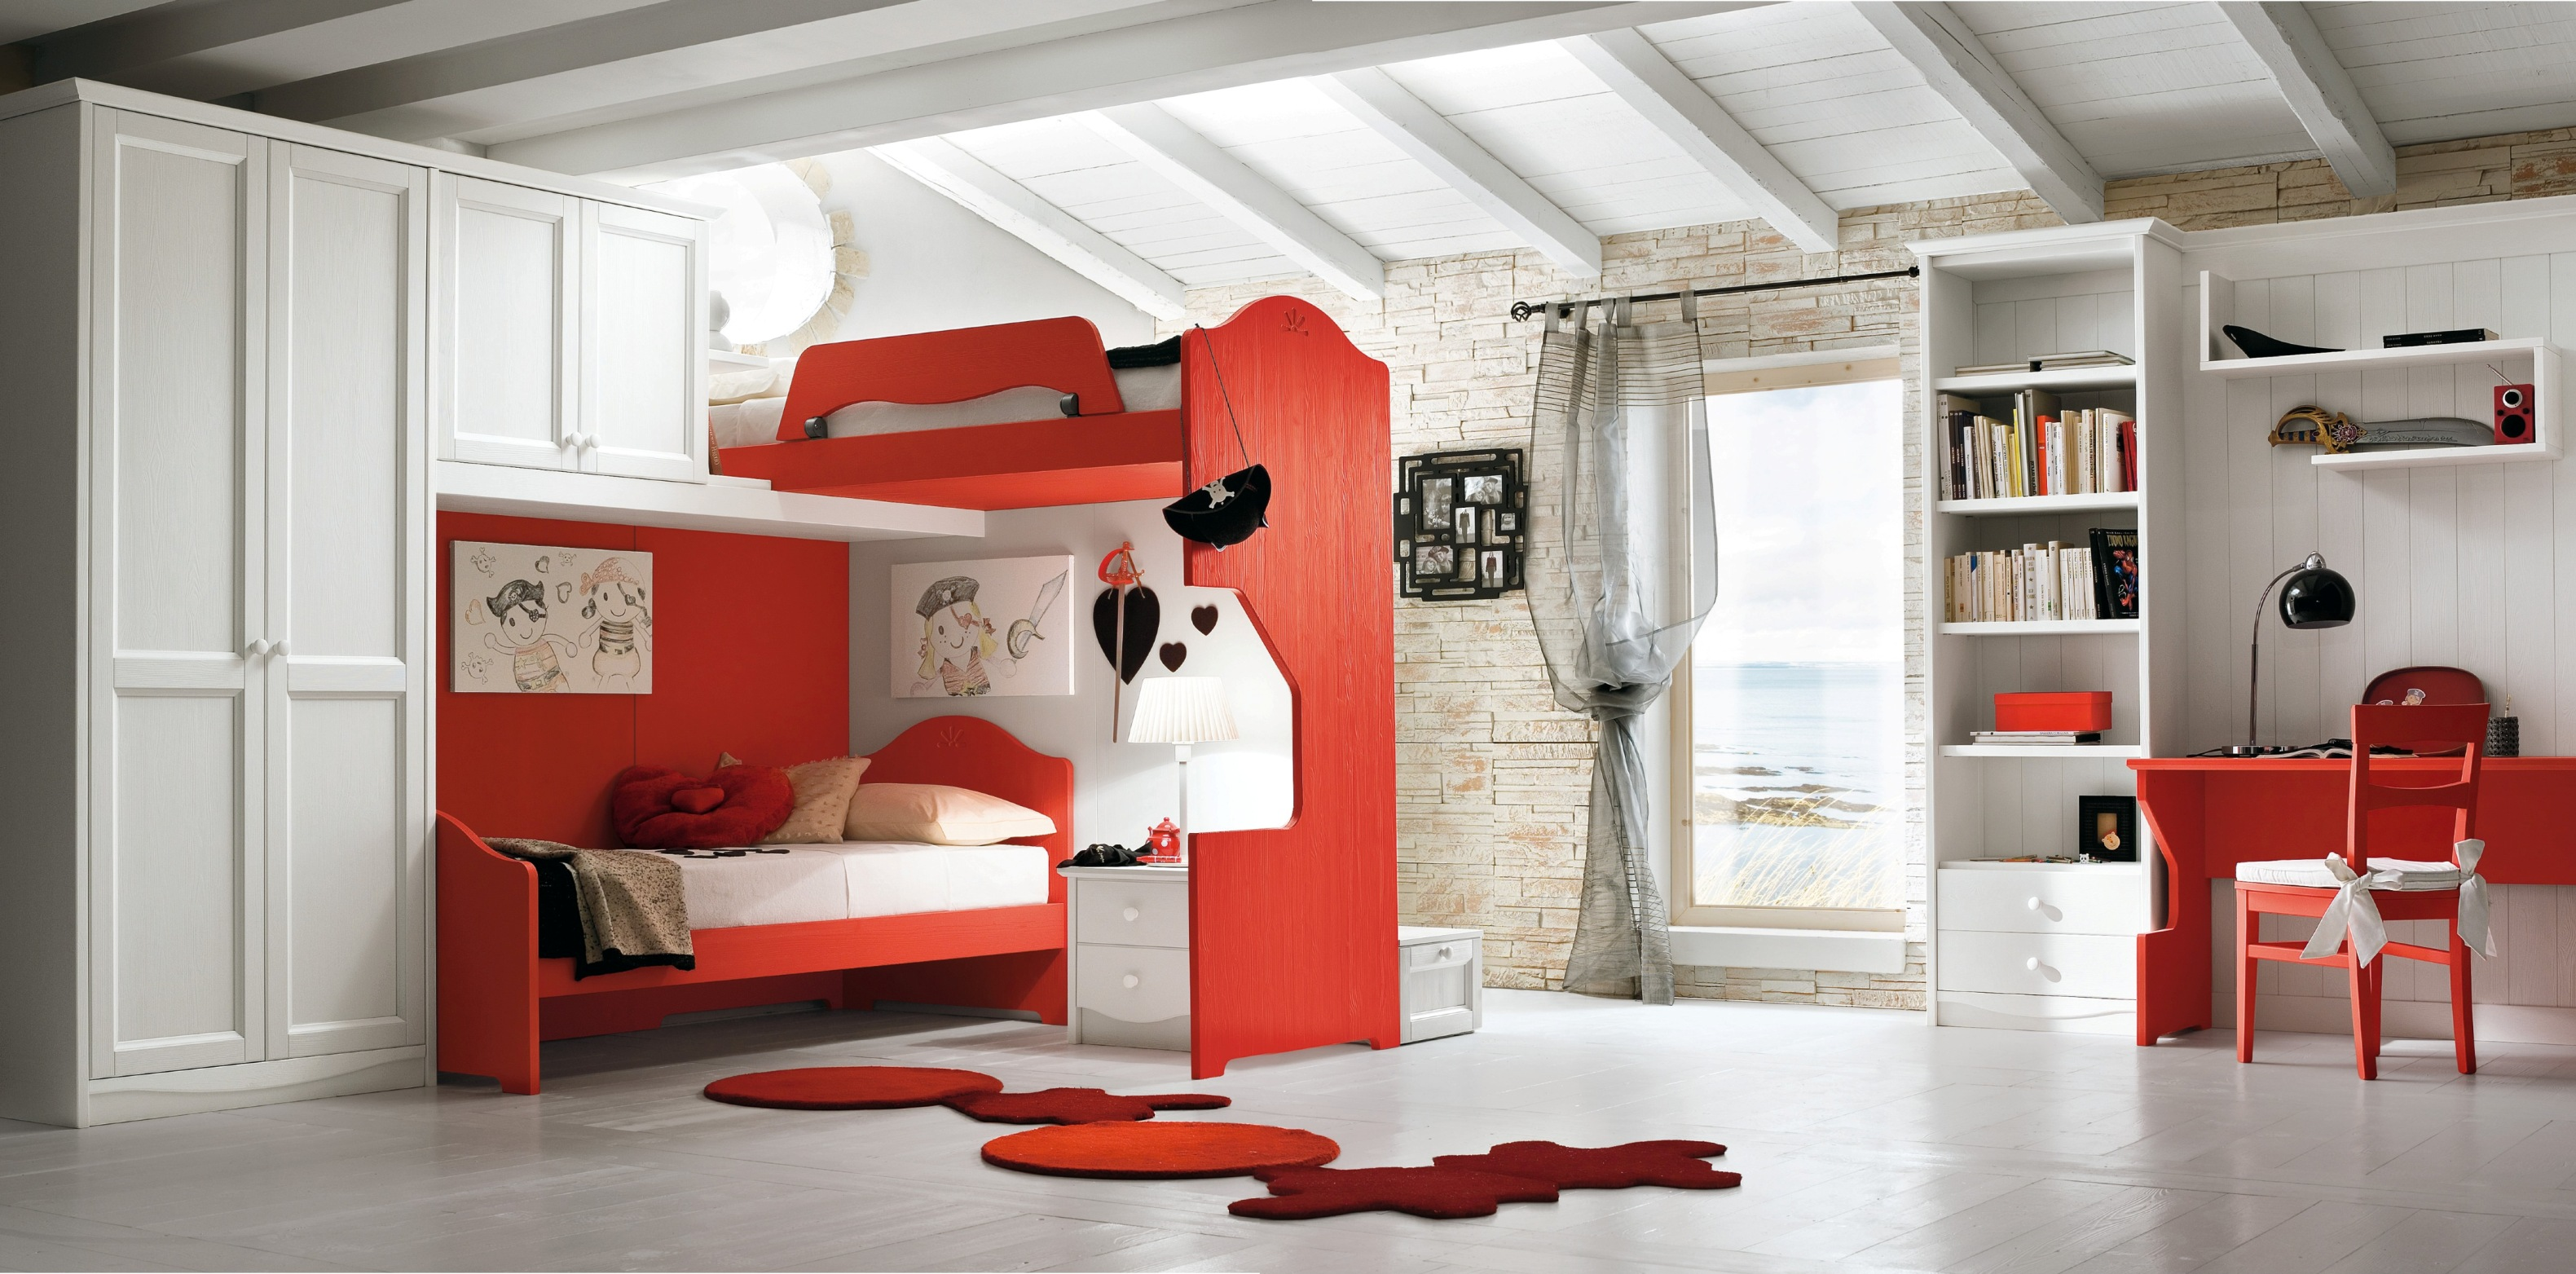 verwunderlich jugendzimmer f r kleine r ume bilder erindzain. Black Bedroom Furniture Sets. Home Design Ideas